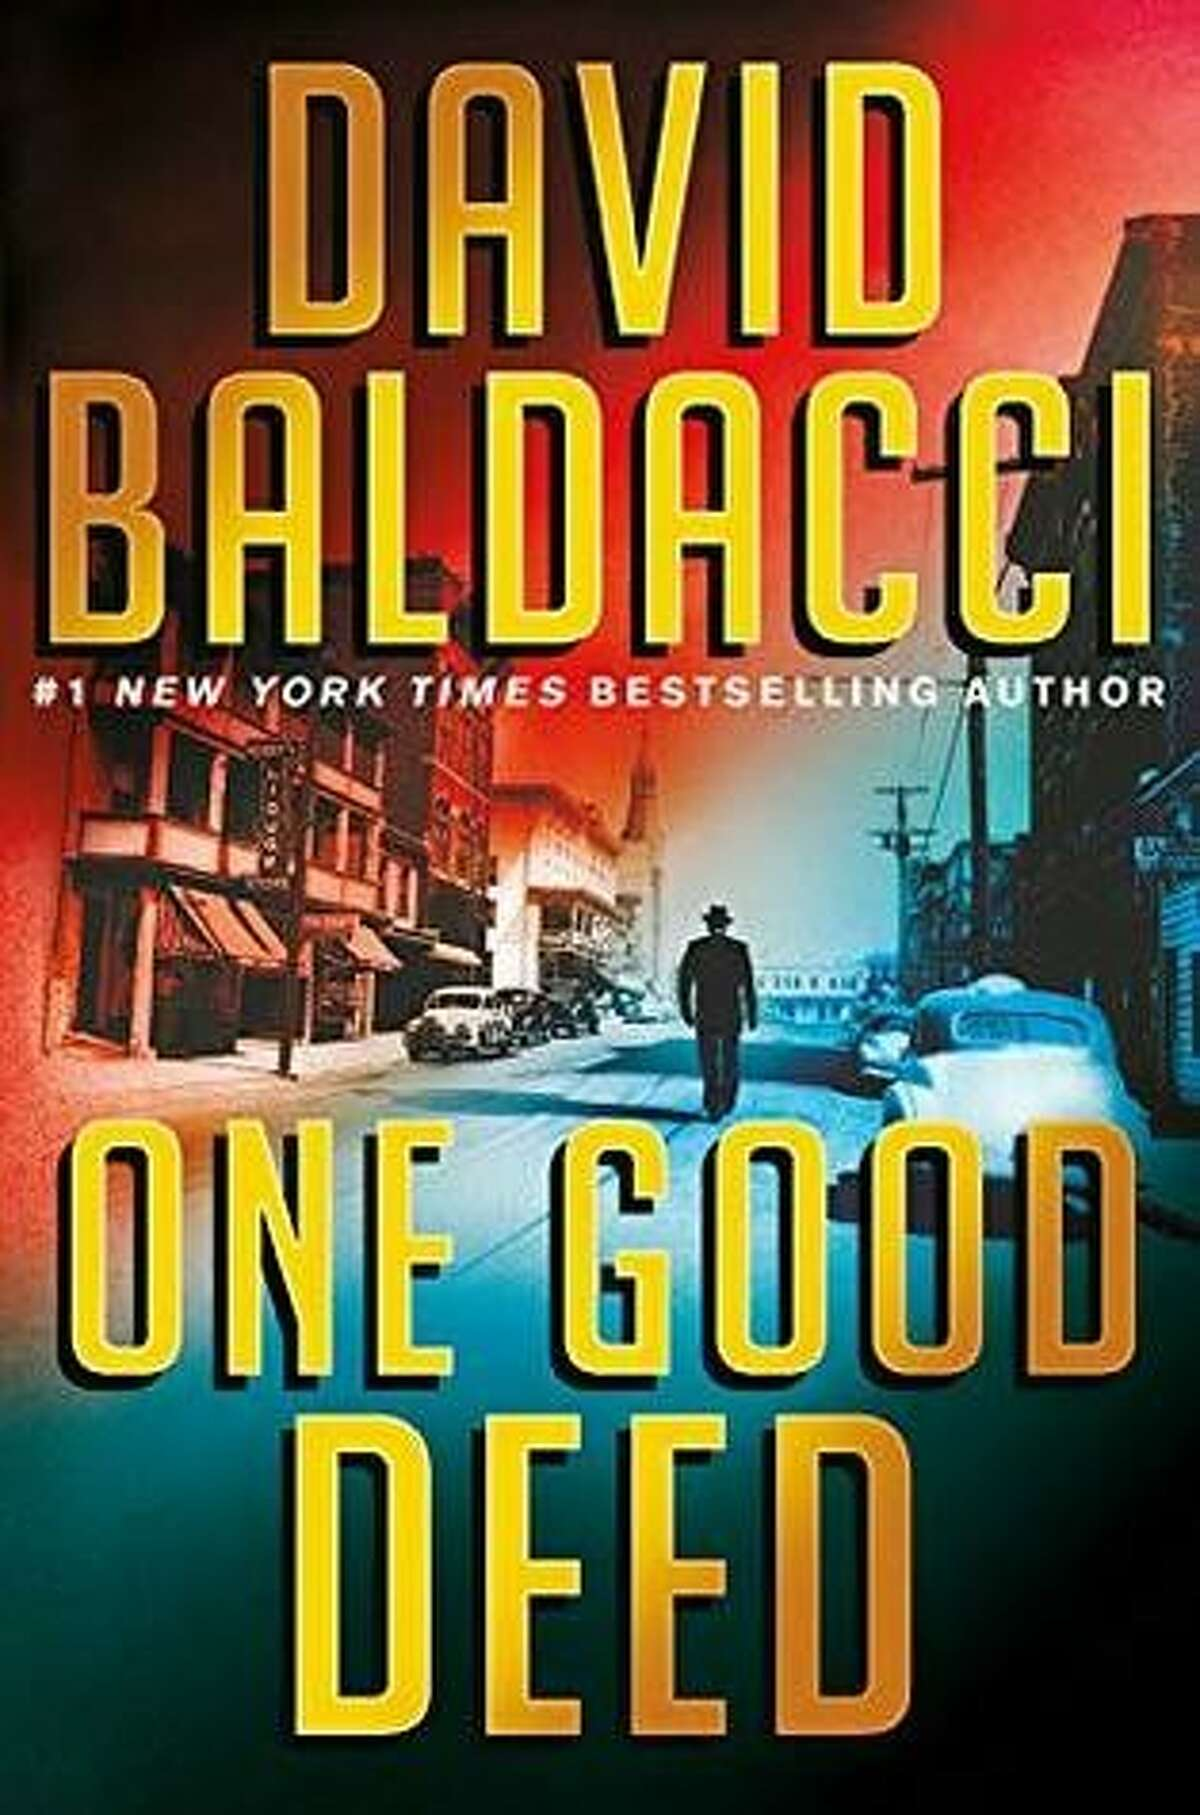 """#3 : """"One Good Deed"""" Total checkouts: 215 Made the Top 3 at 3 Capital Region libraries. """"One Good Deed"""" by David Baldacci (via Open Library)"""